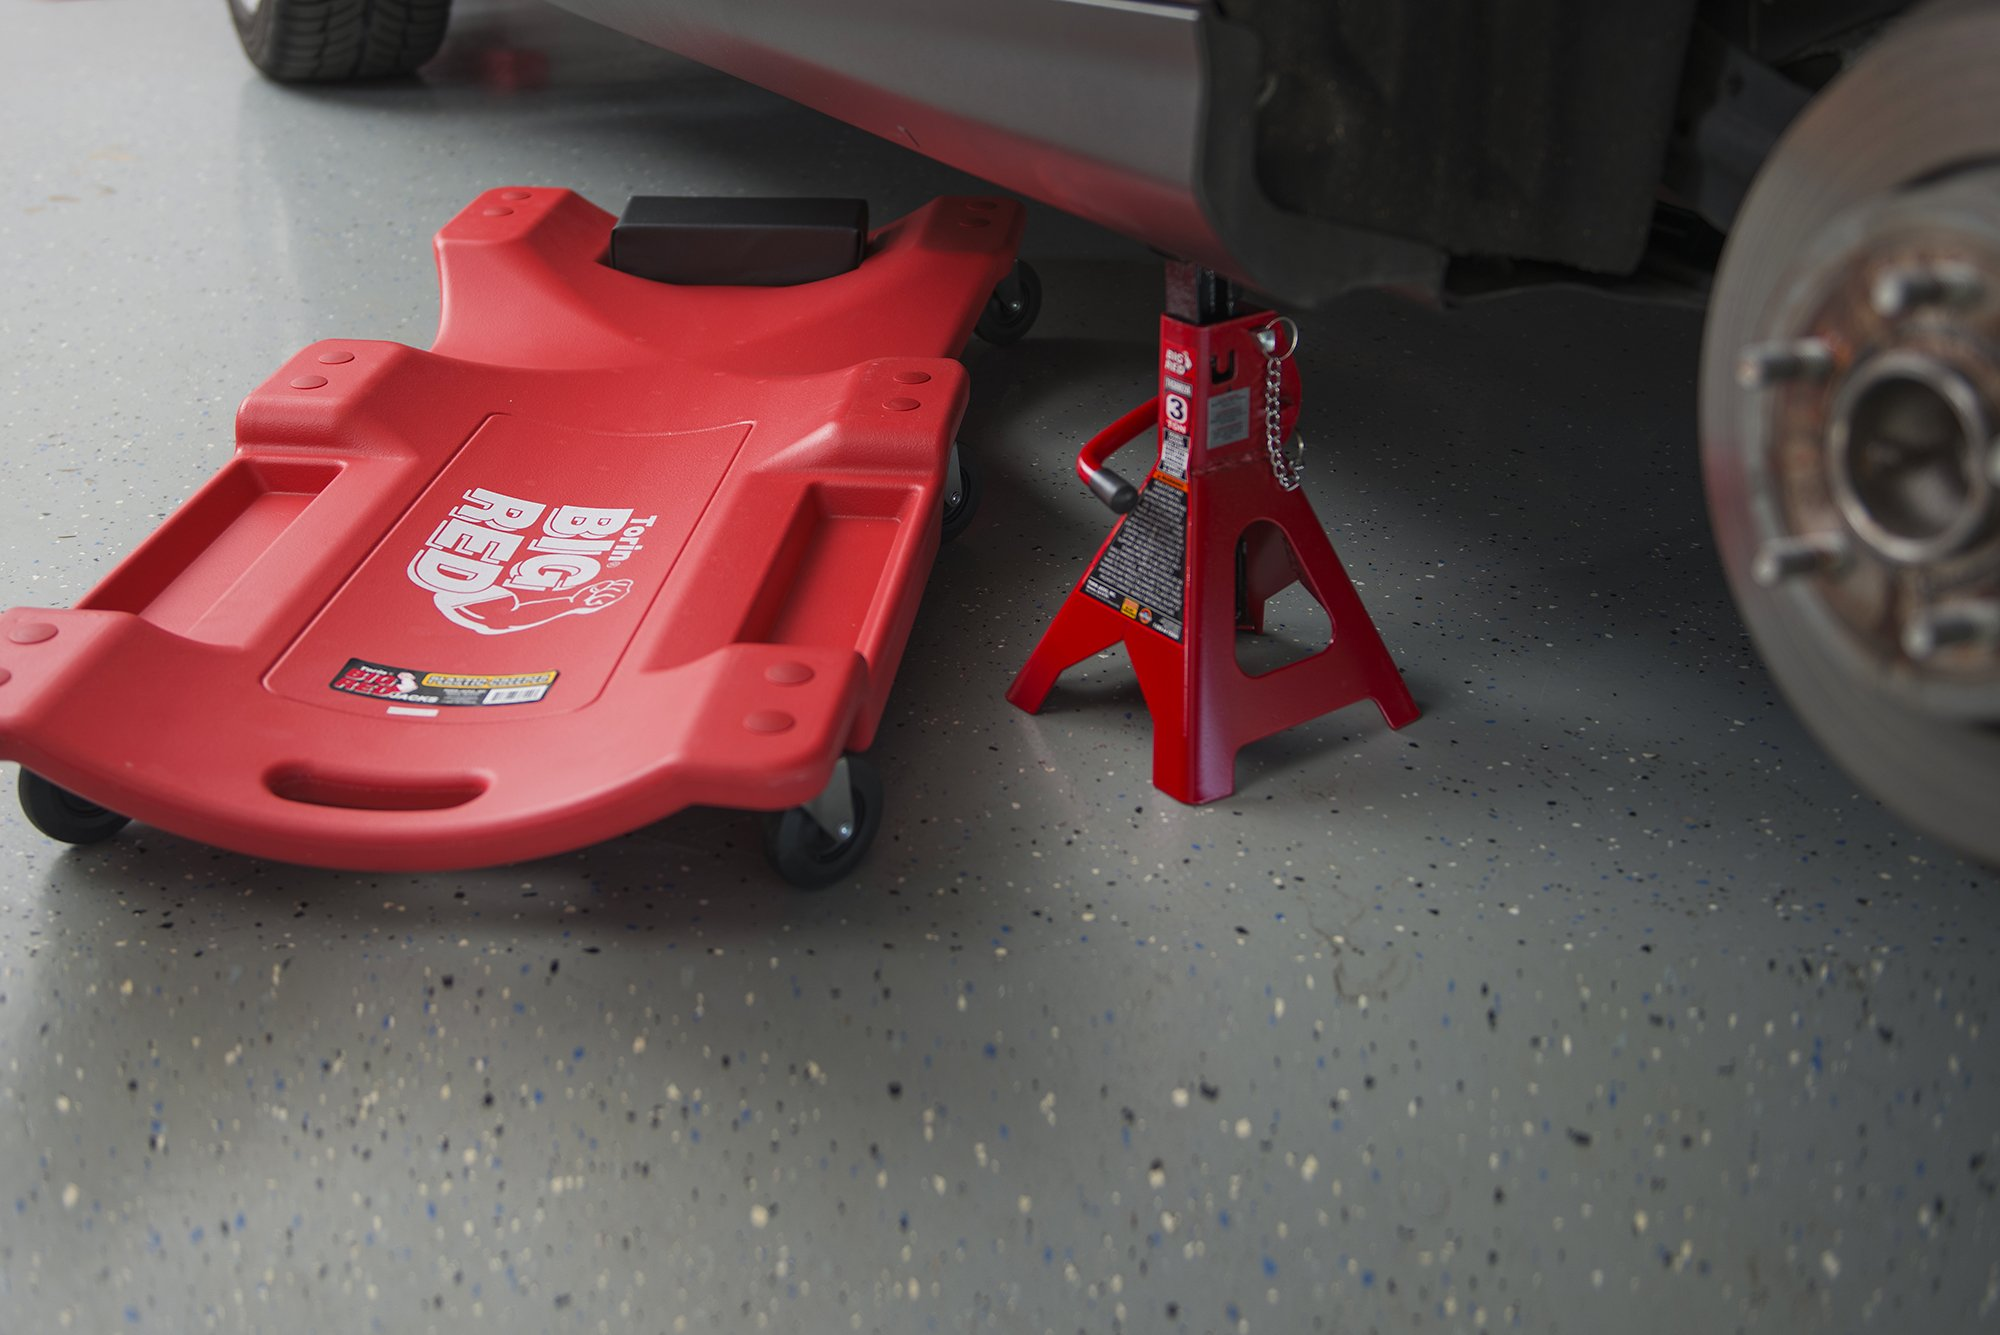 Torin Big Red Rolling Garage/Shop Creeper: 40'' Plastic Mechanic Cart with Padded Headrest, Red by Torin (Image #5)